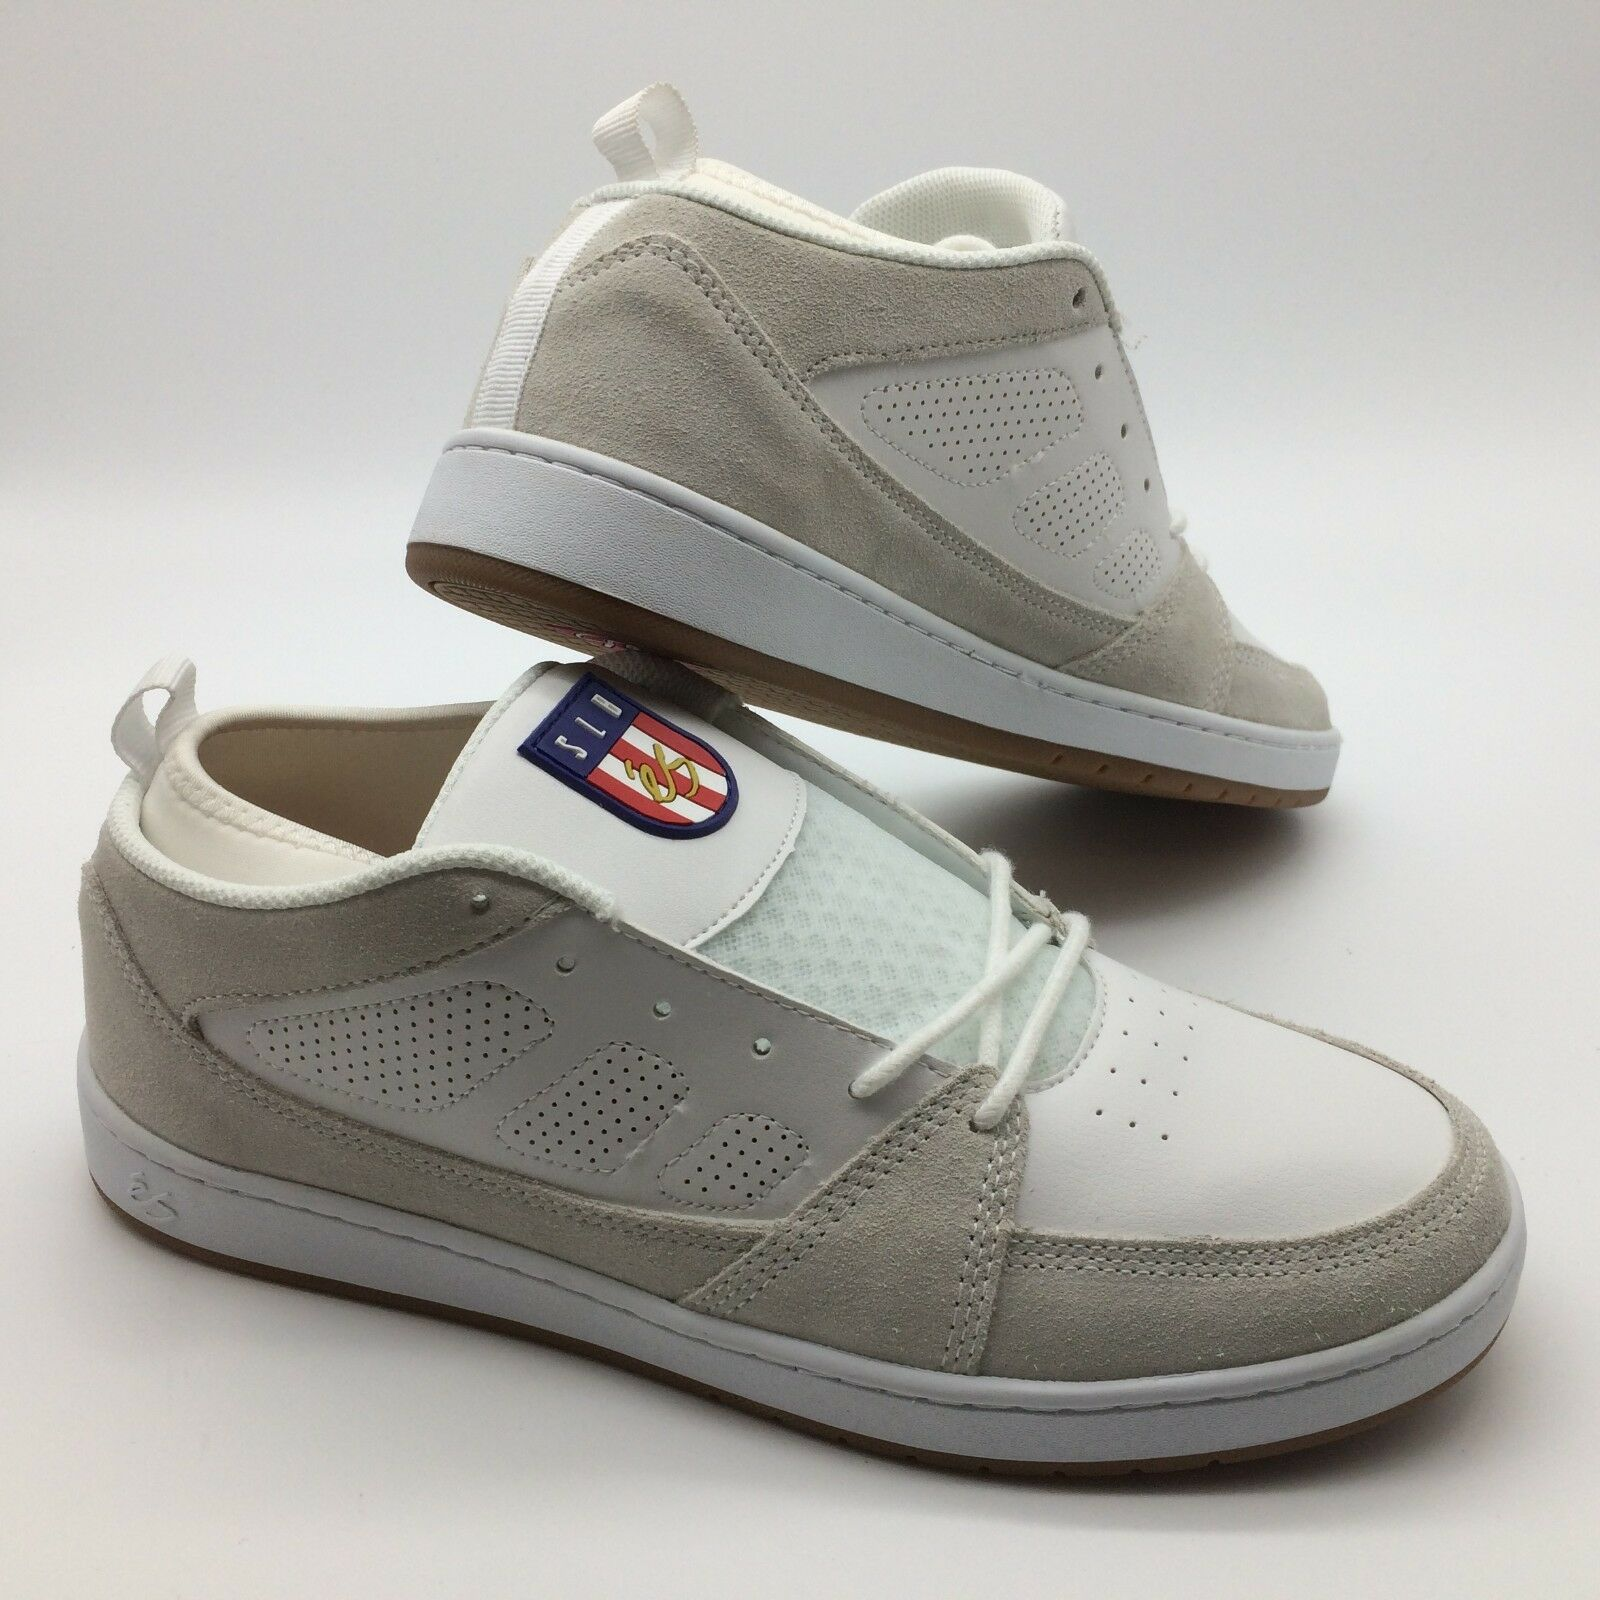 ES Men's shoes's'' MENS SLB MID'' COLOR--WHT WHT GUM SUEDE